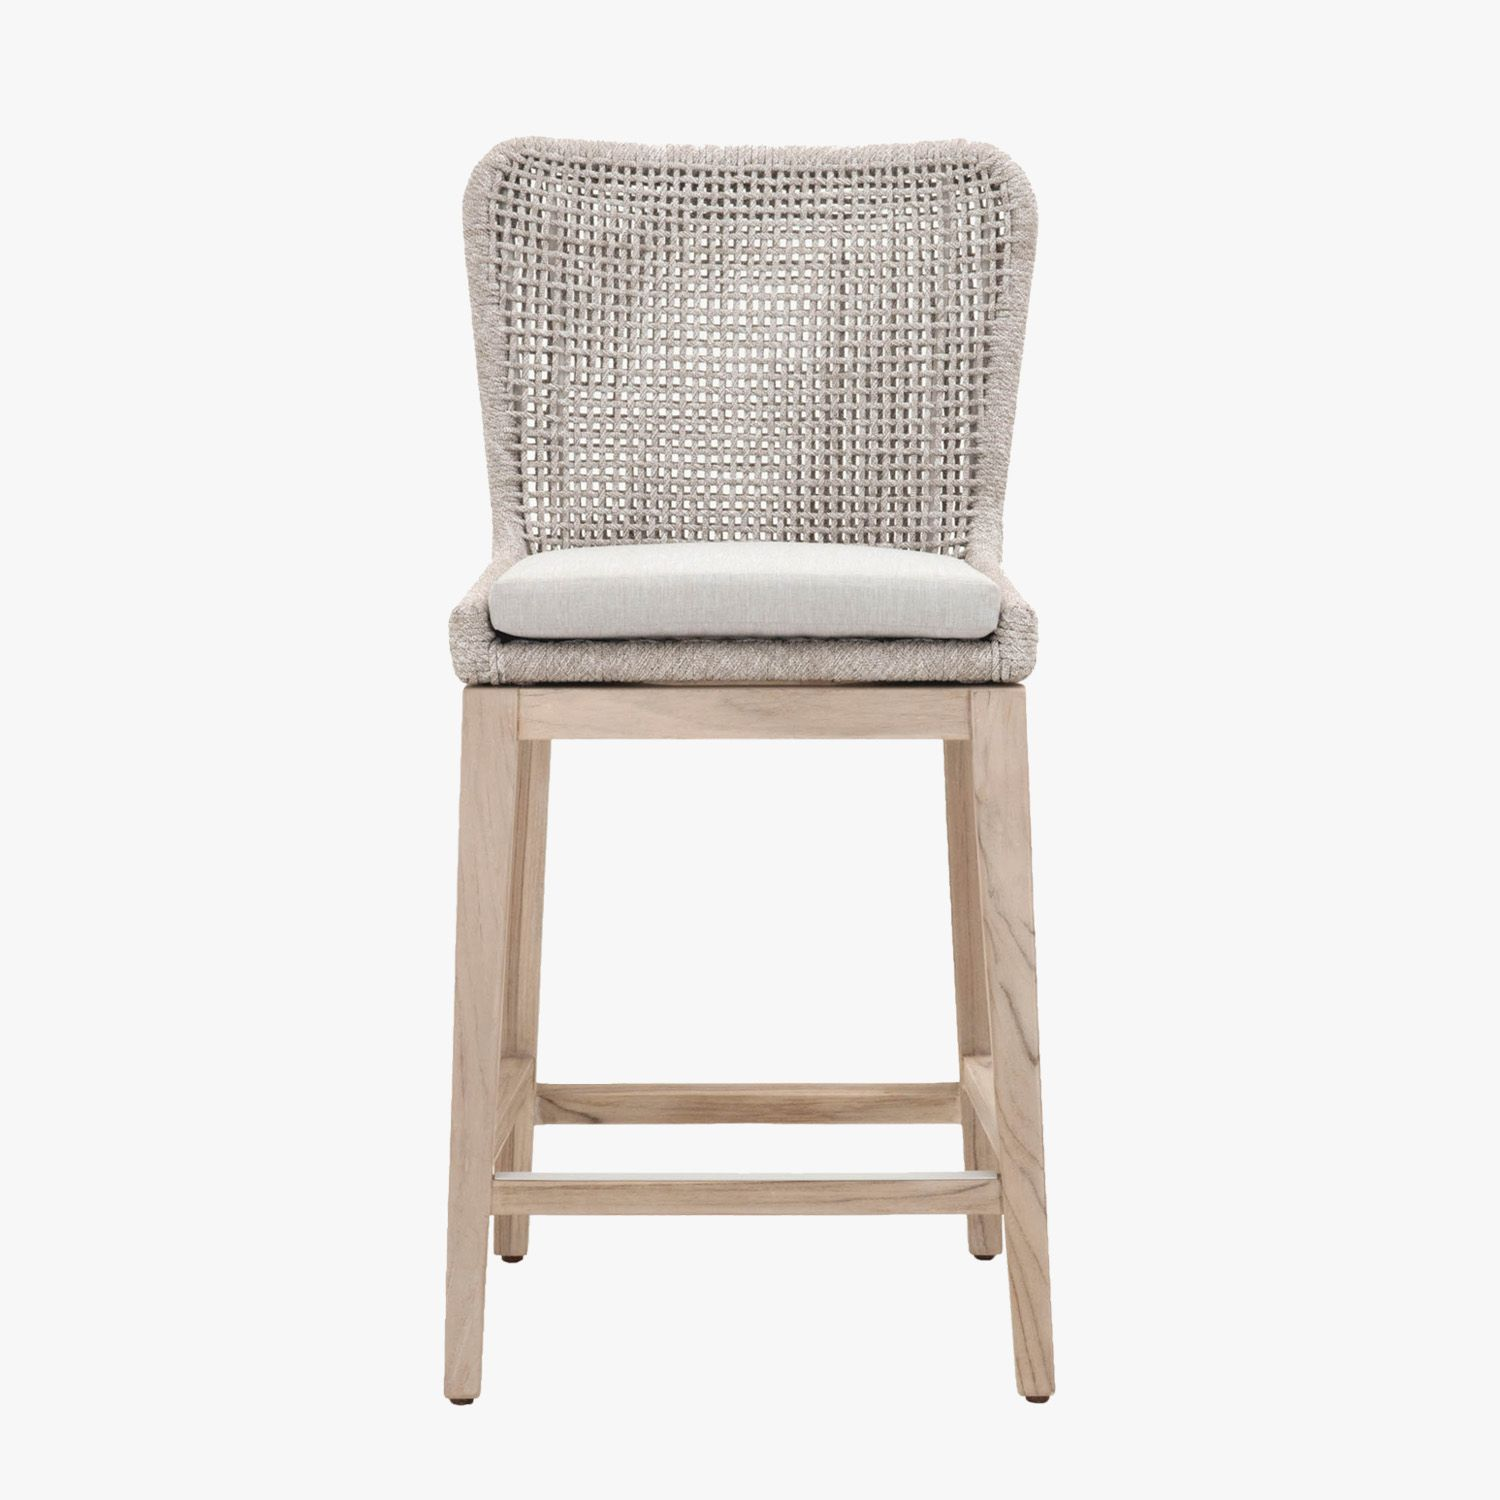 Siena Outdoor Counter Stool Shop Counter Stools Dear Keaton Counter Stools Bar Seating Counter Stools With Backs